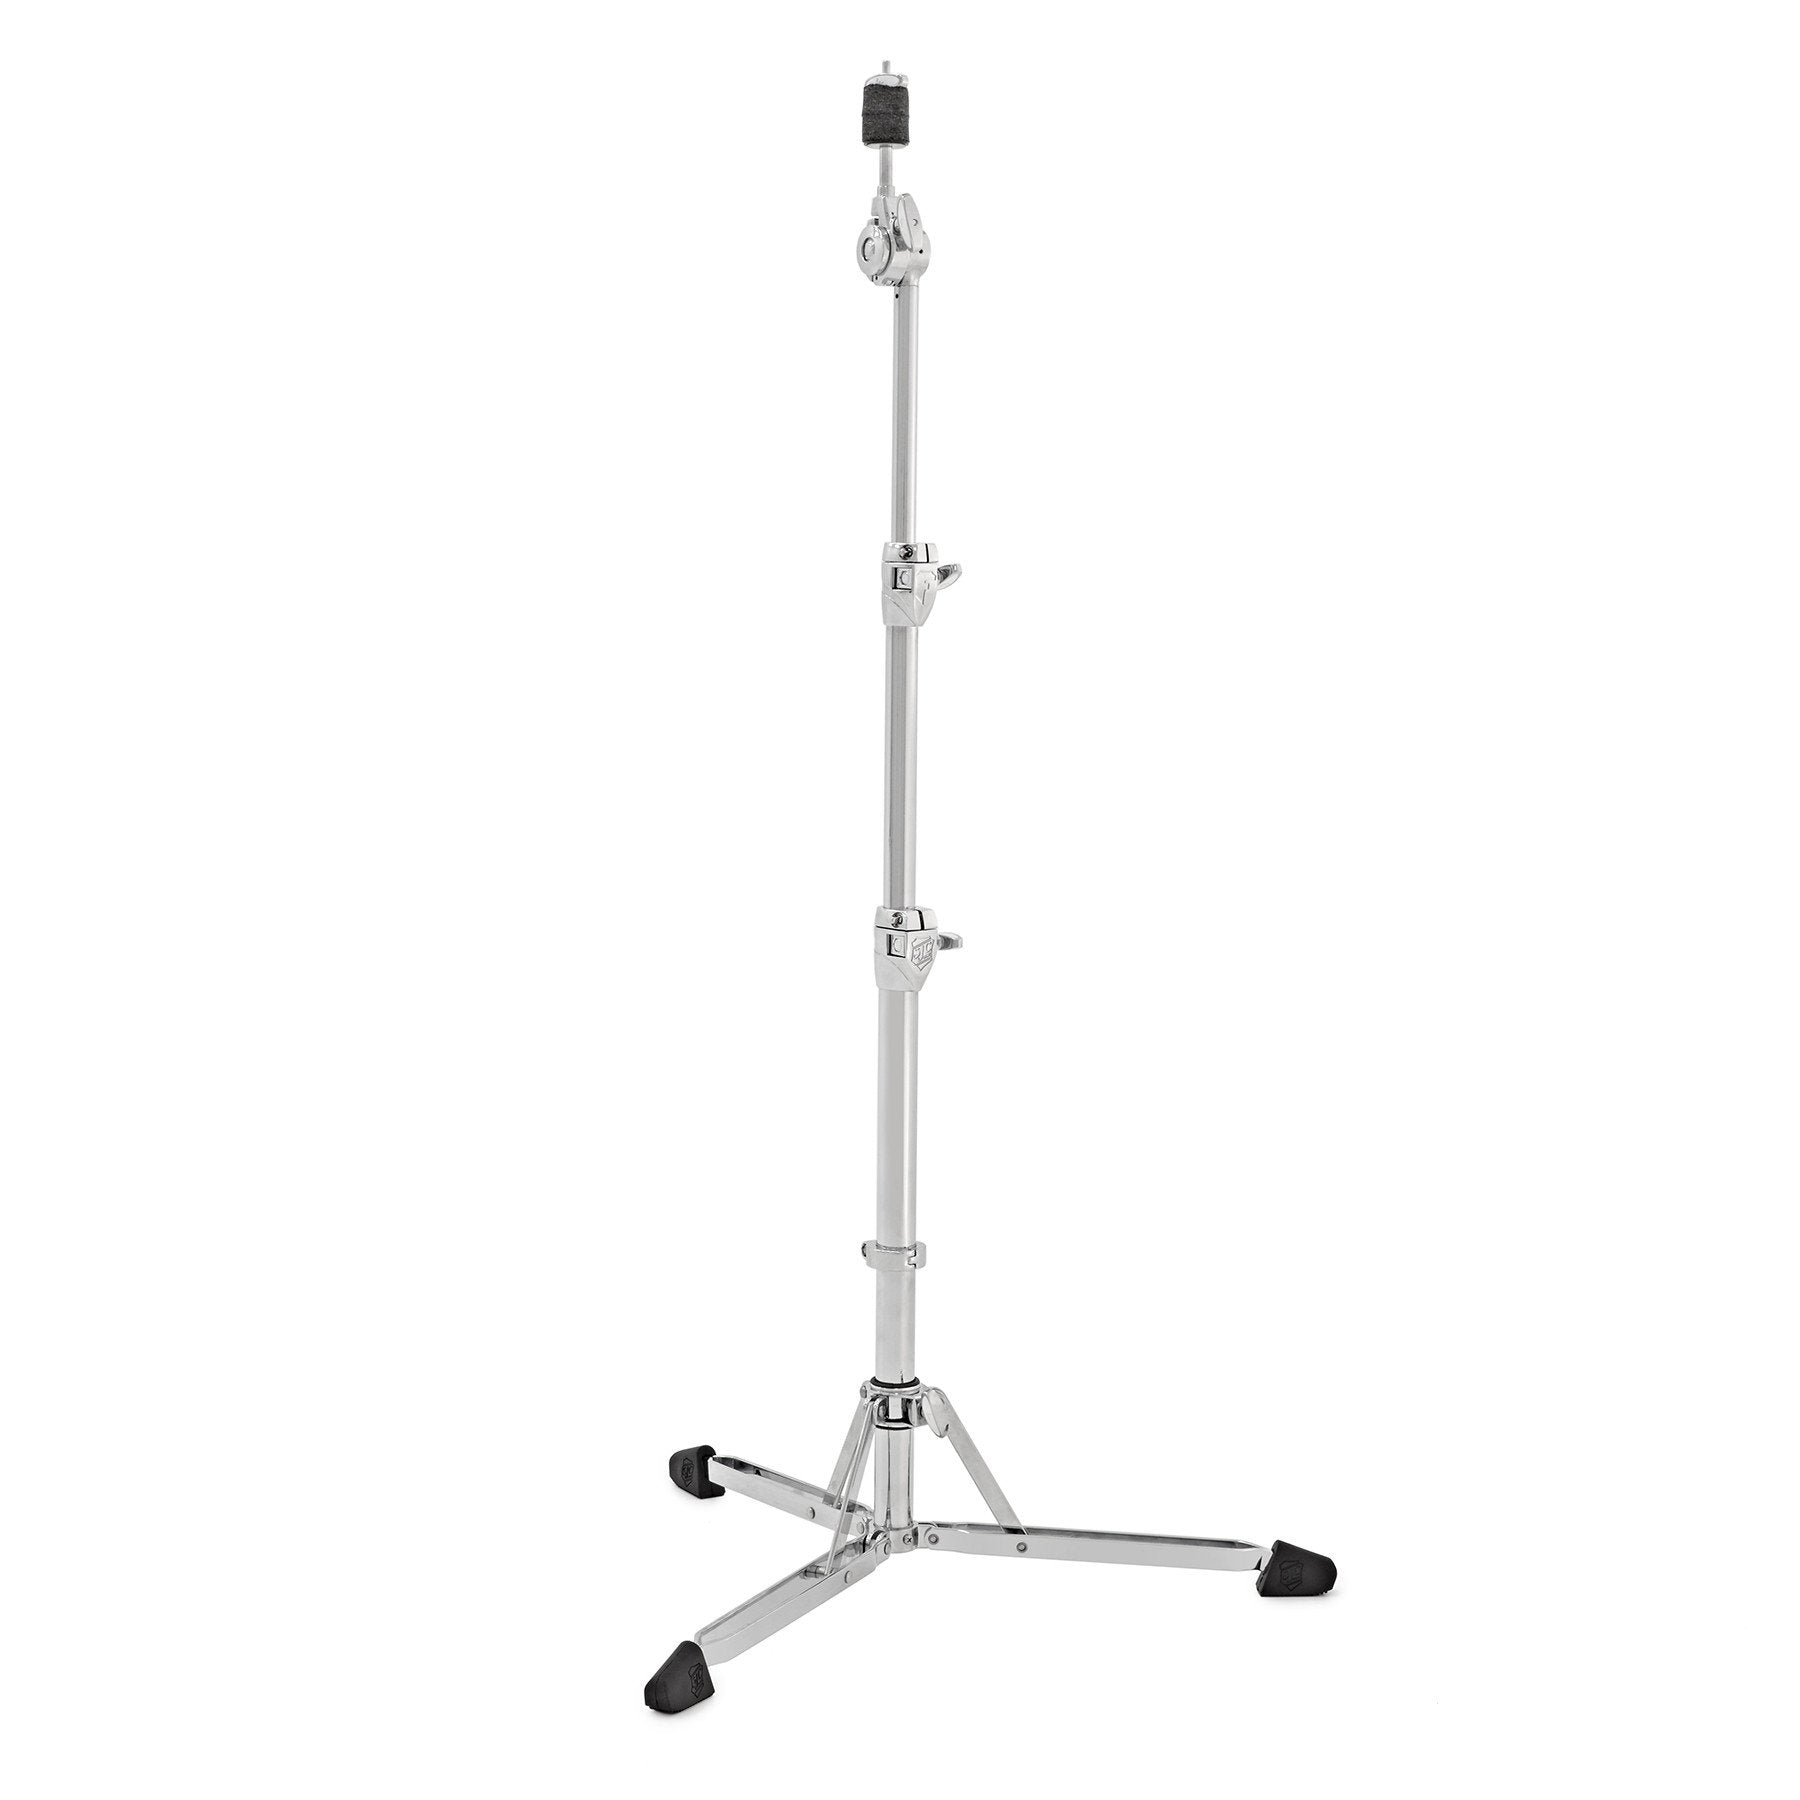 SJC Custom Drums Heavy Duty Double Braced Foundation Hardware Flatline Straight Cymbal Stand